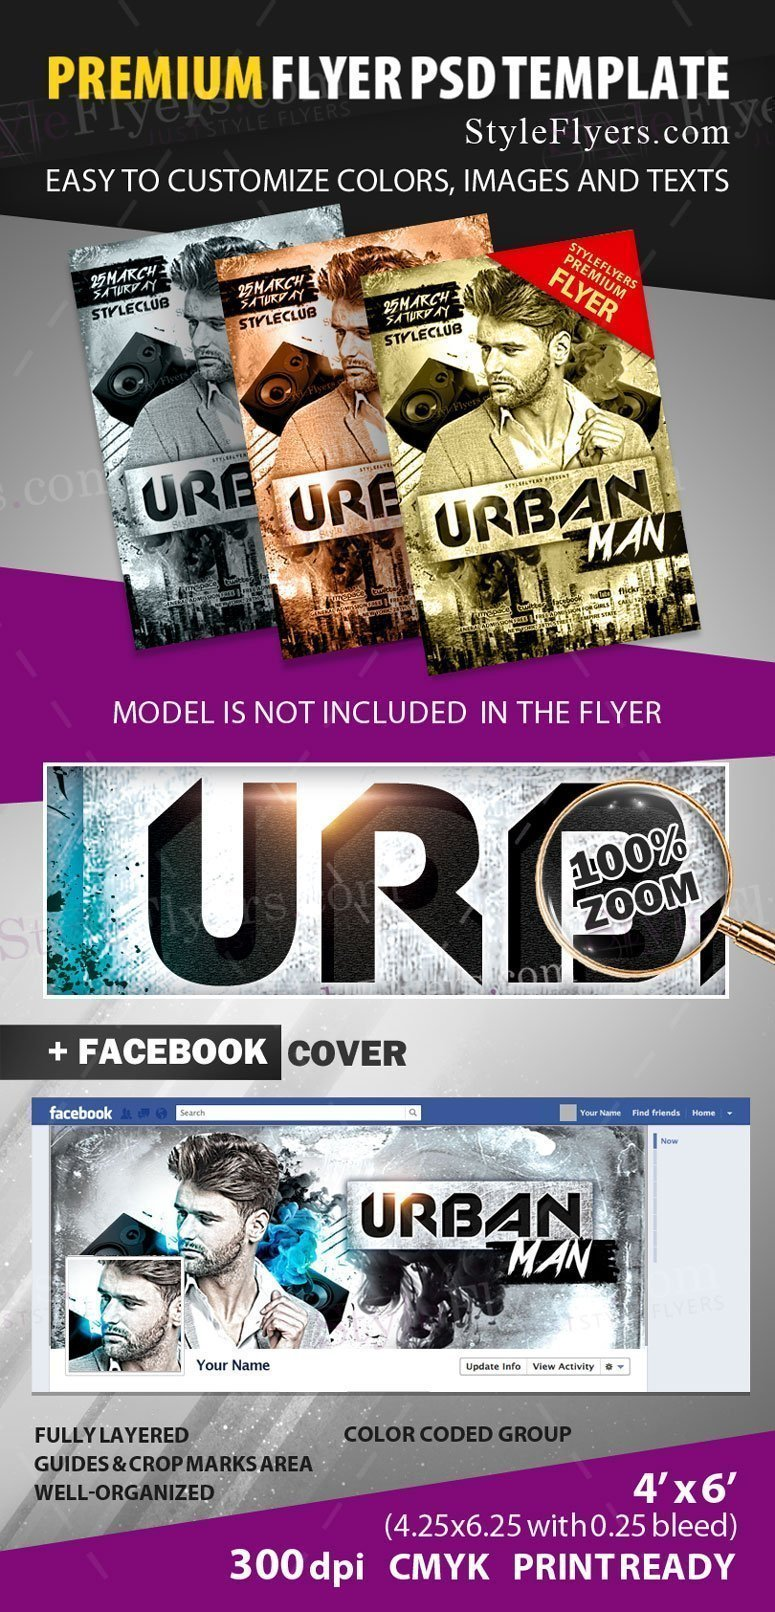 Urban Man Flyer preview_premium